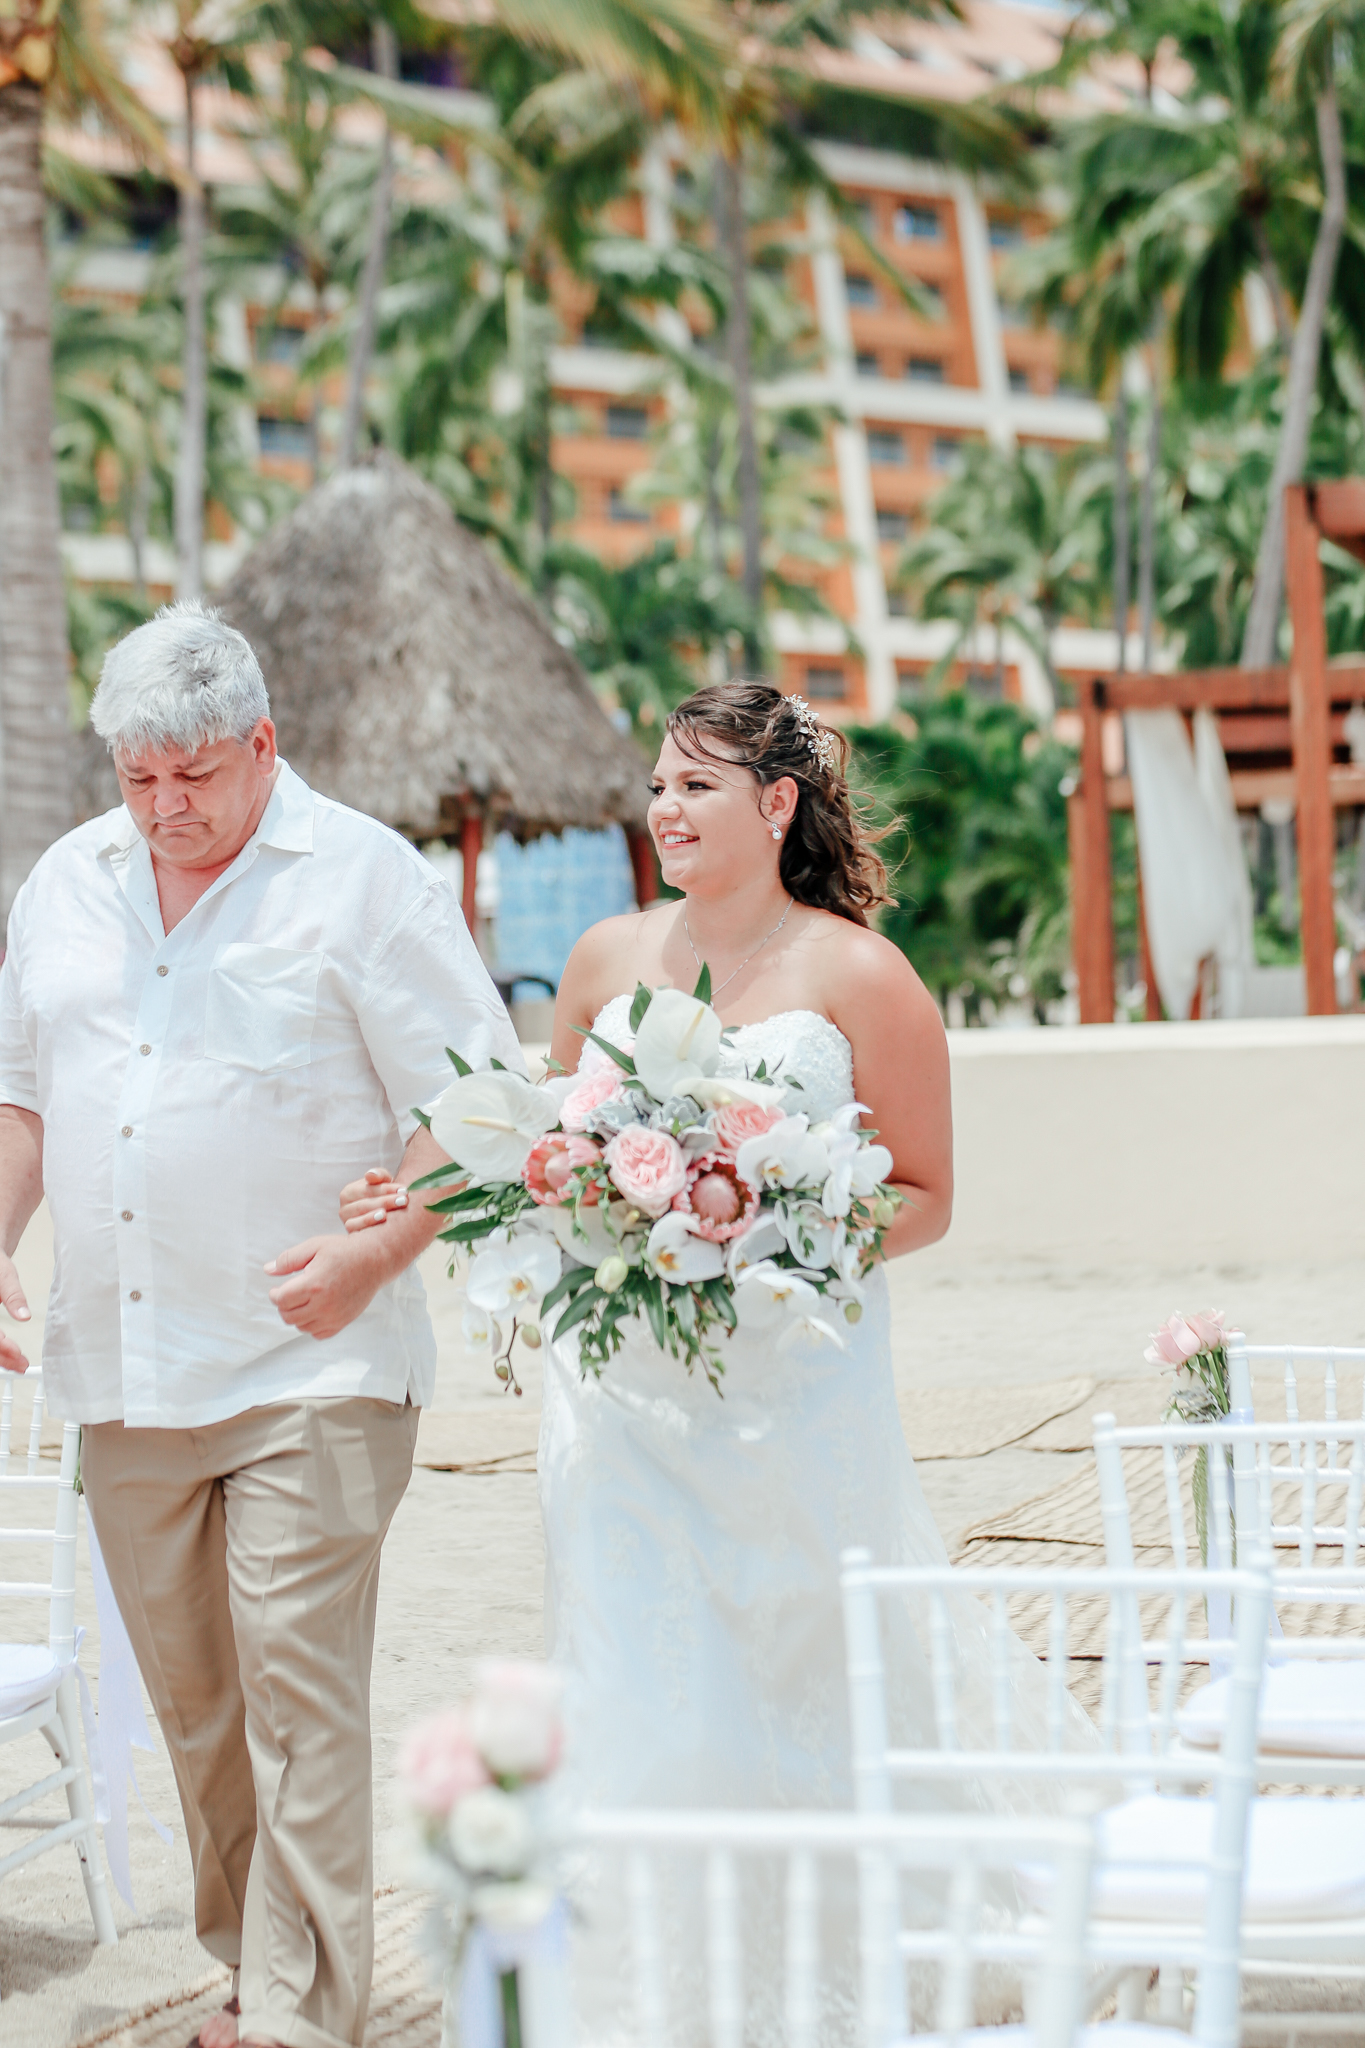 Tiffany and Ryan - Puerto Vallarta Wedding Photographer - 48.jpg